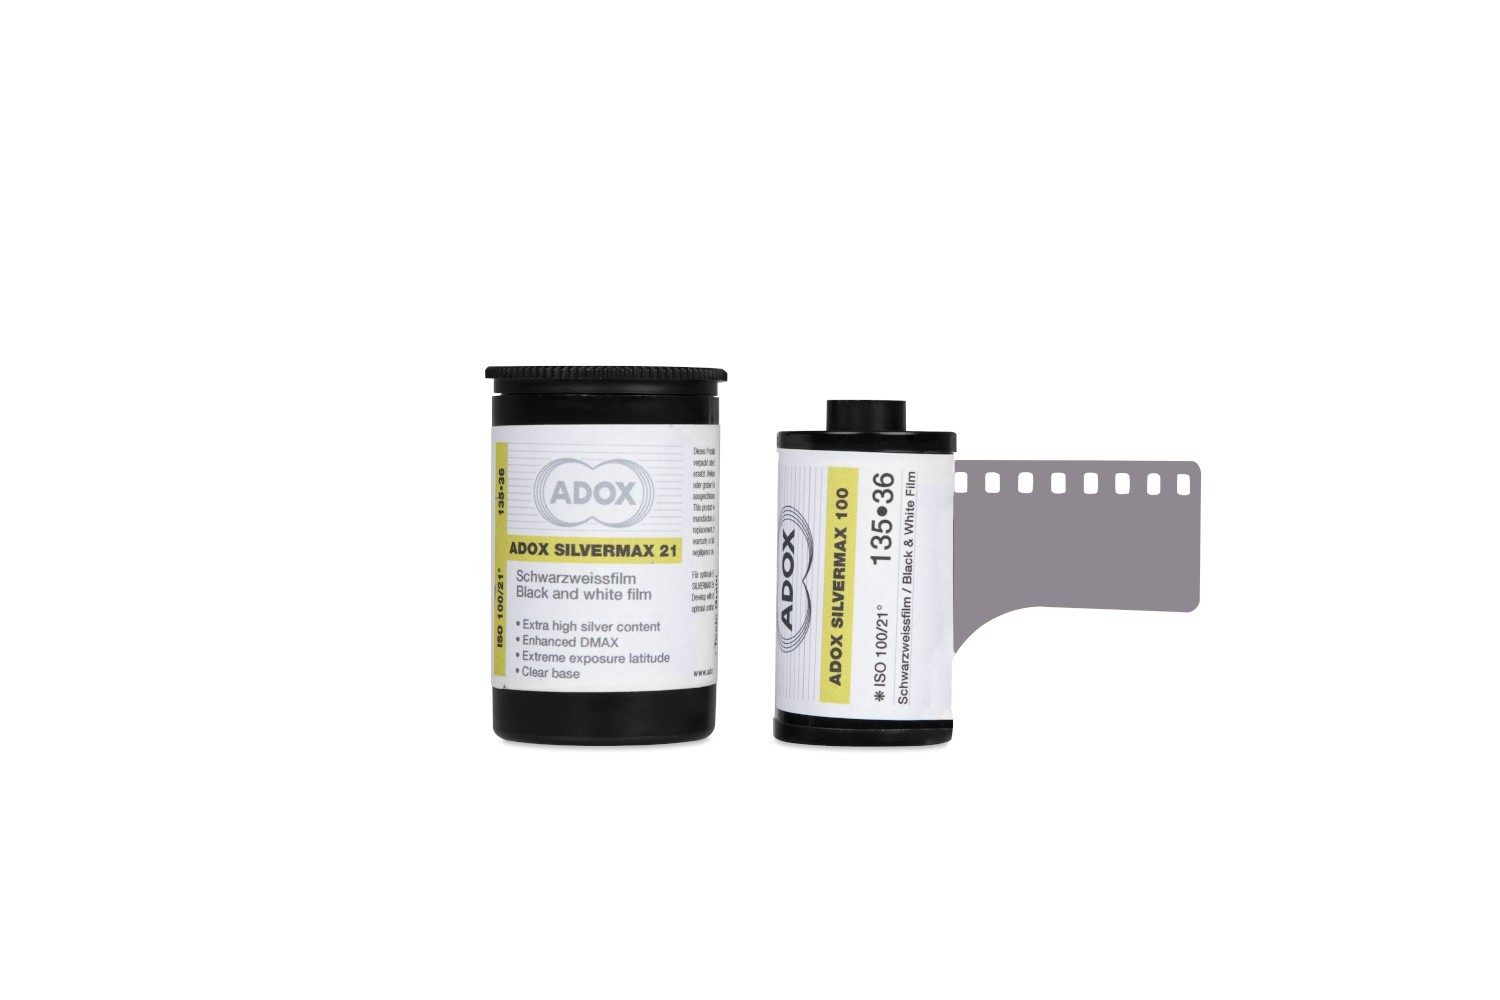 Adox Silvermax B&W Film with high silver content